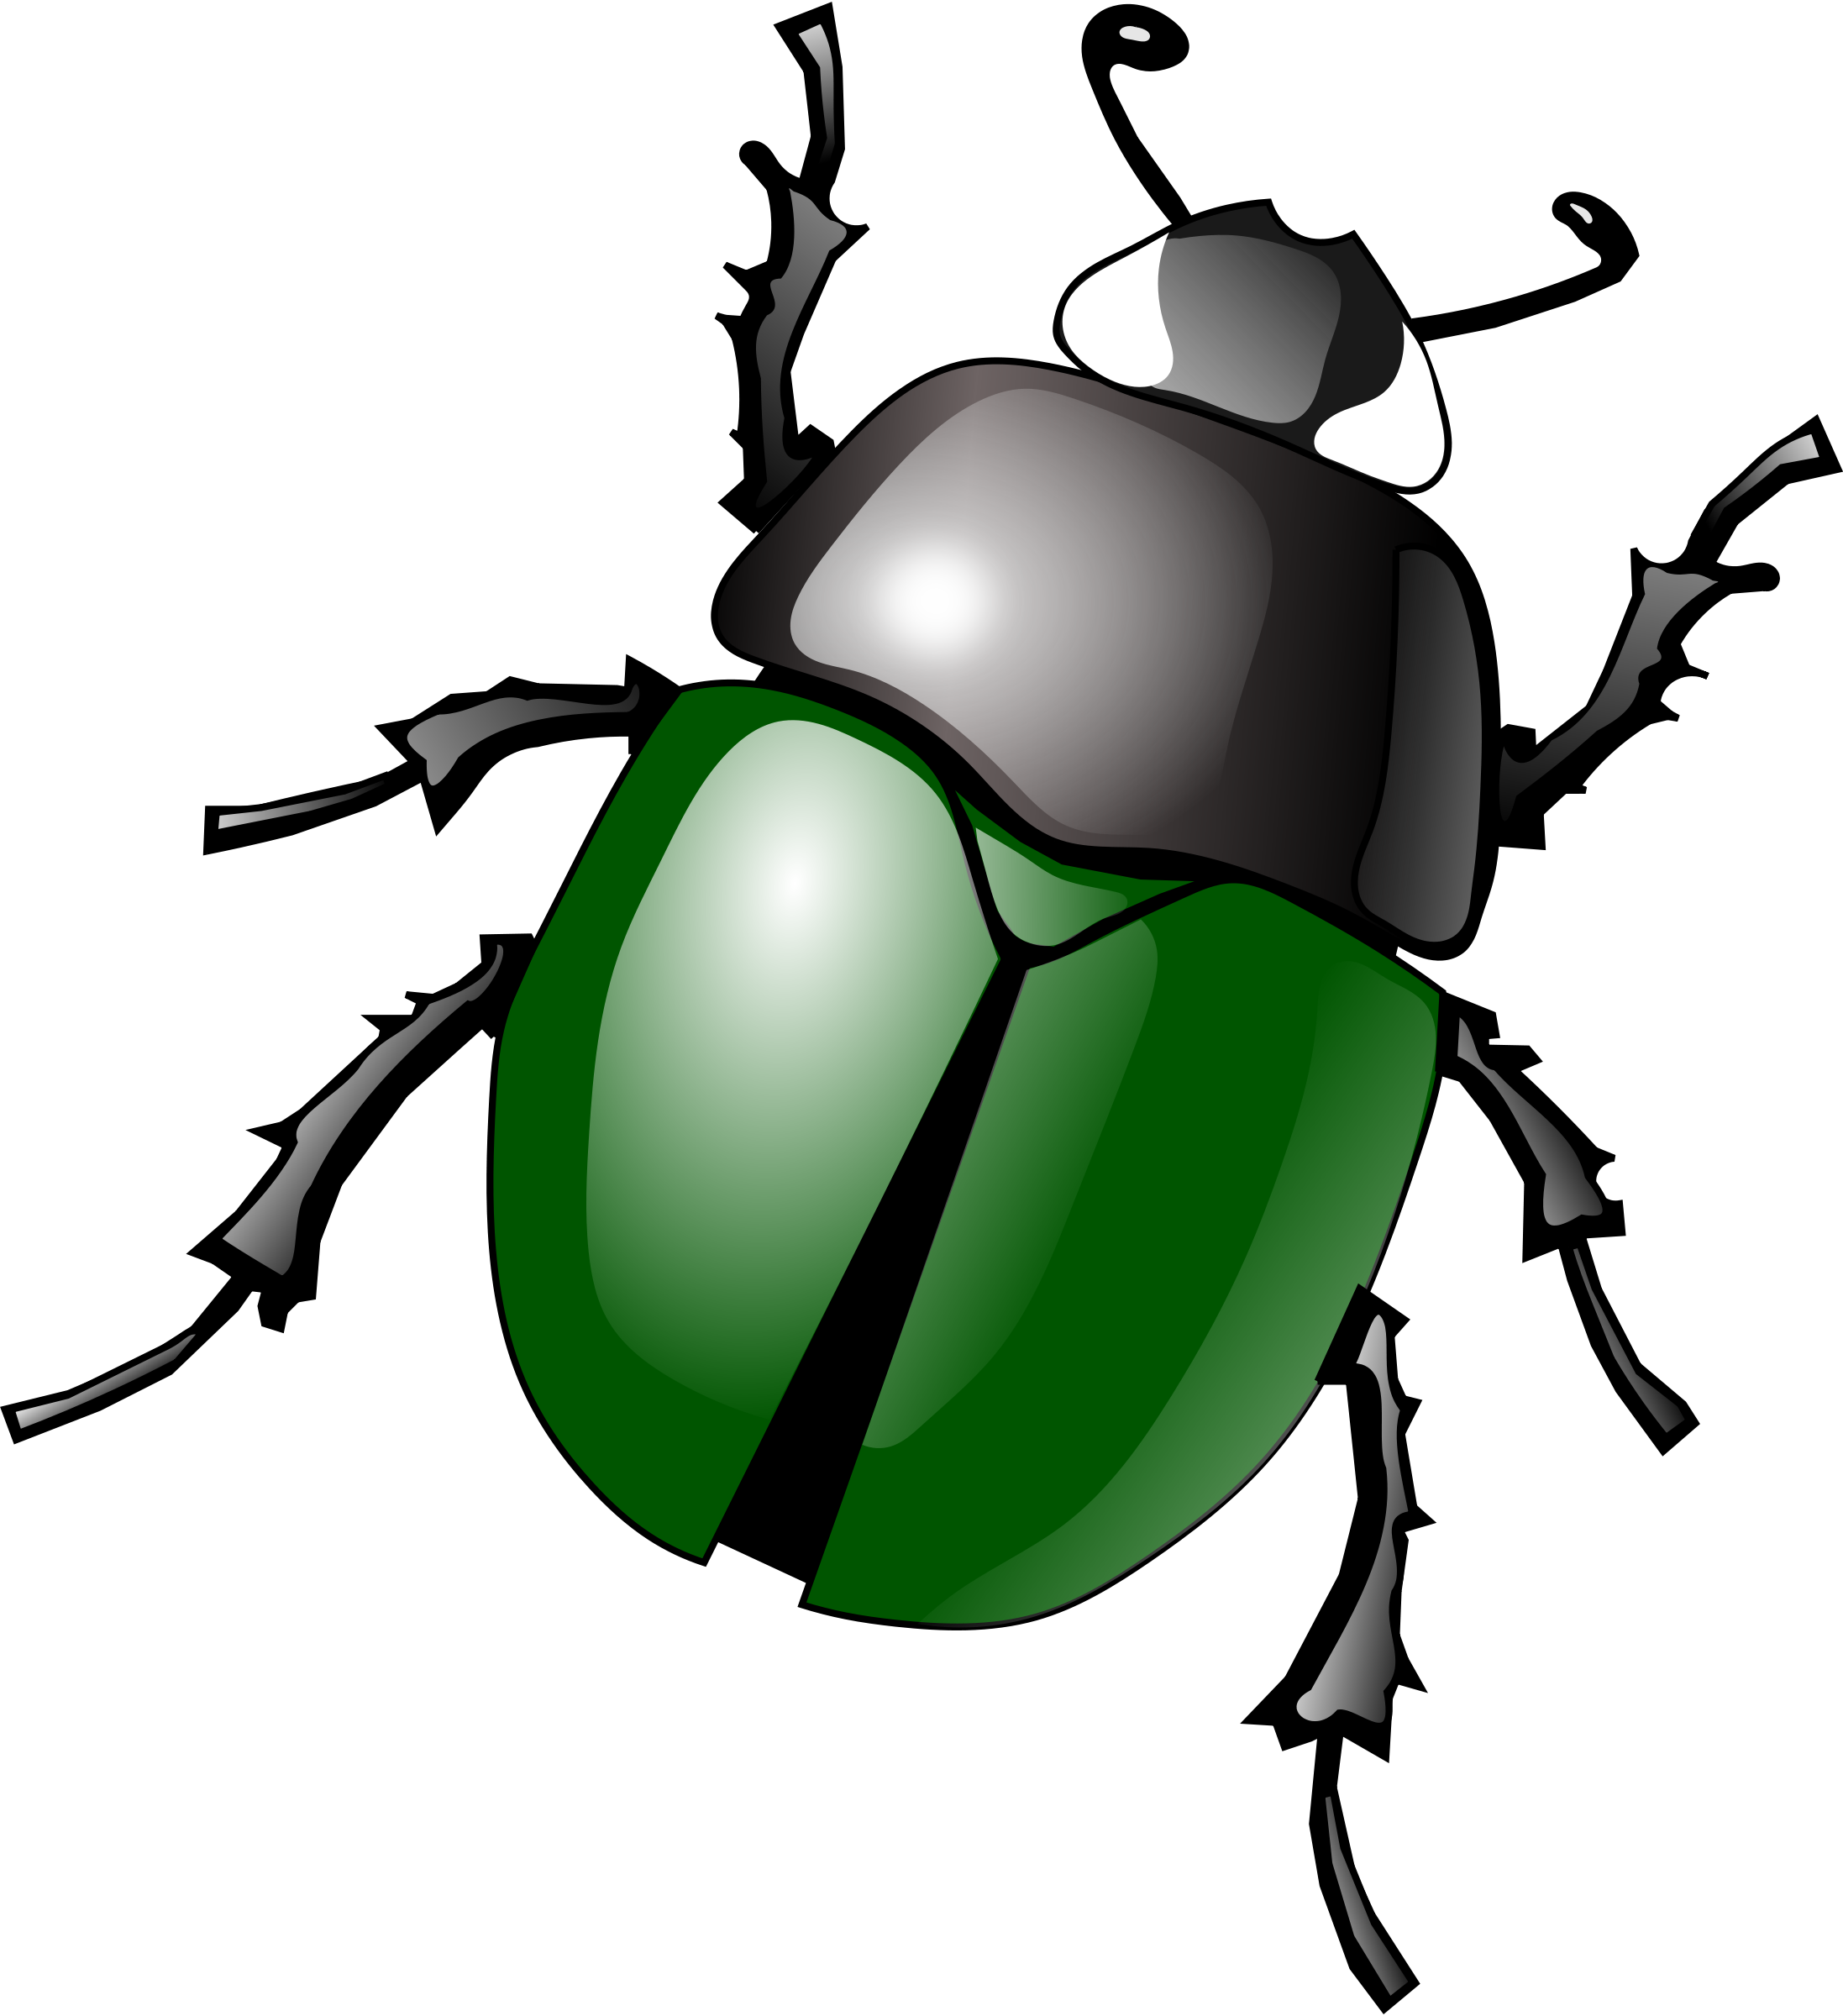 Bugs image free pictures bug clip art image